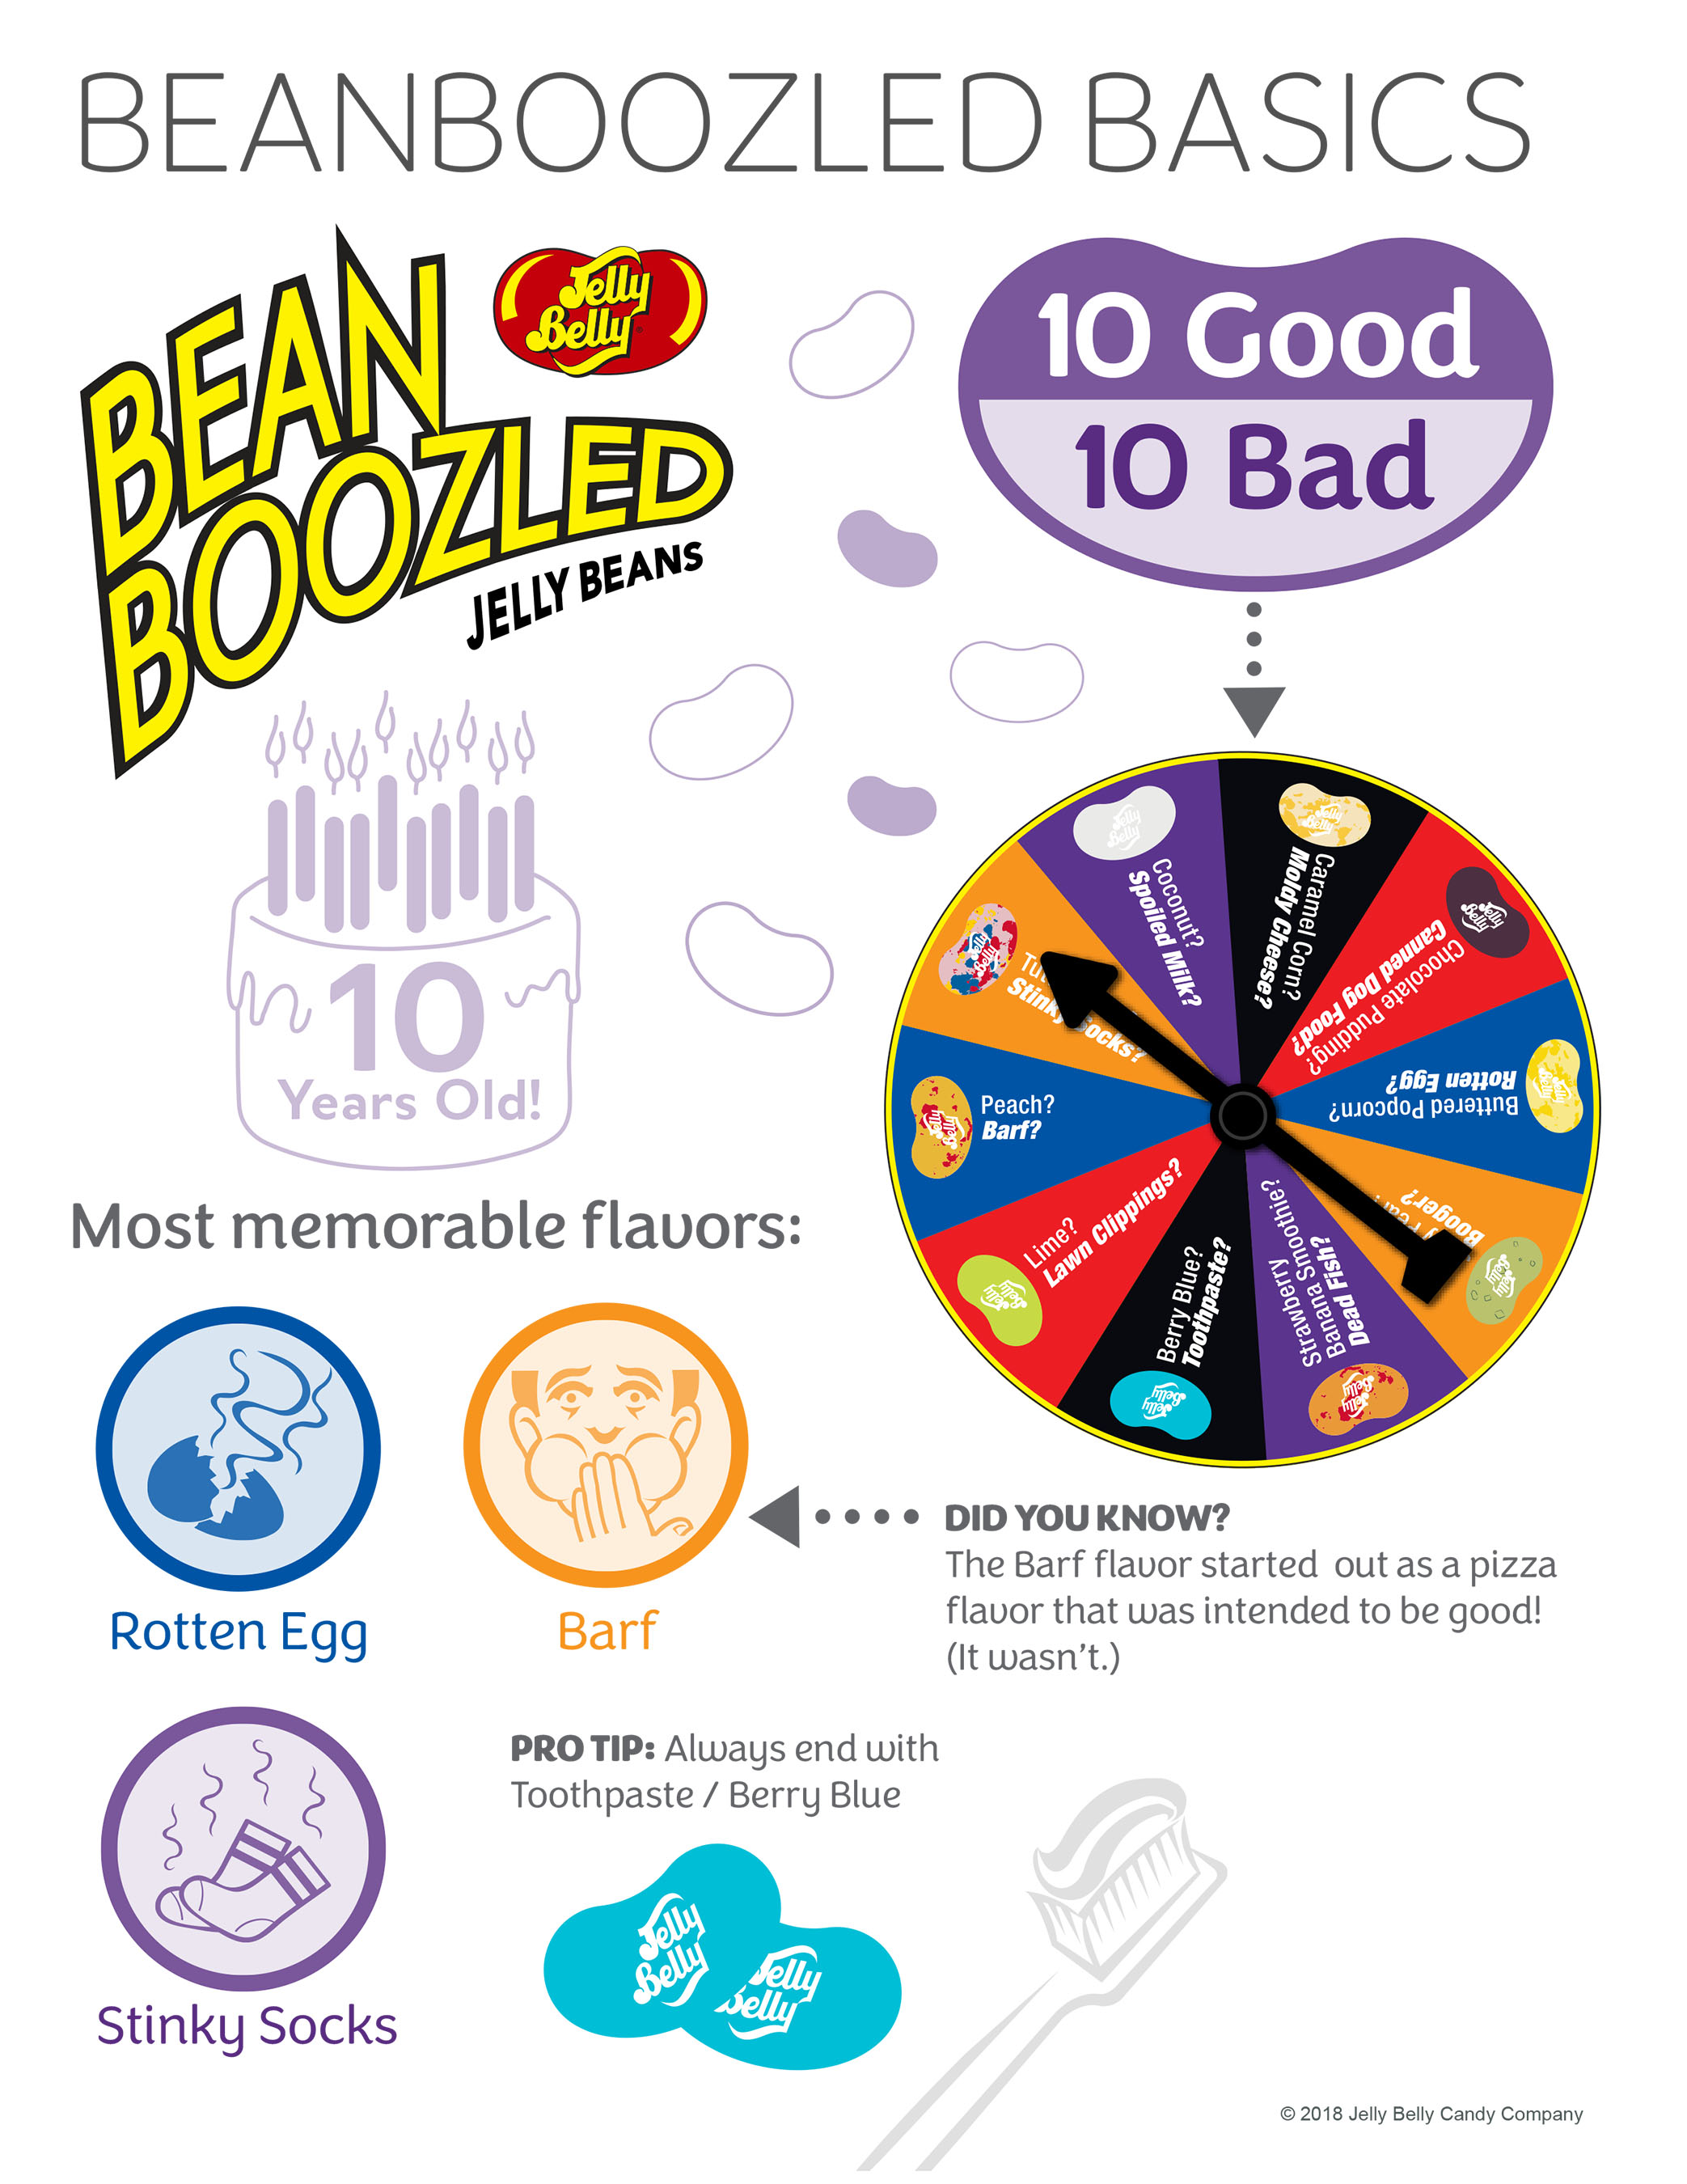 Infographic from Jelly Belly Candy Company celebrates pranks with insider info about BeanBoozled